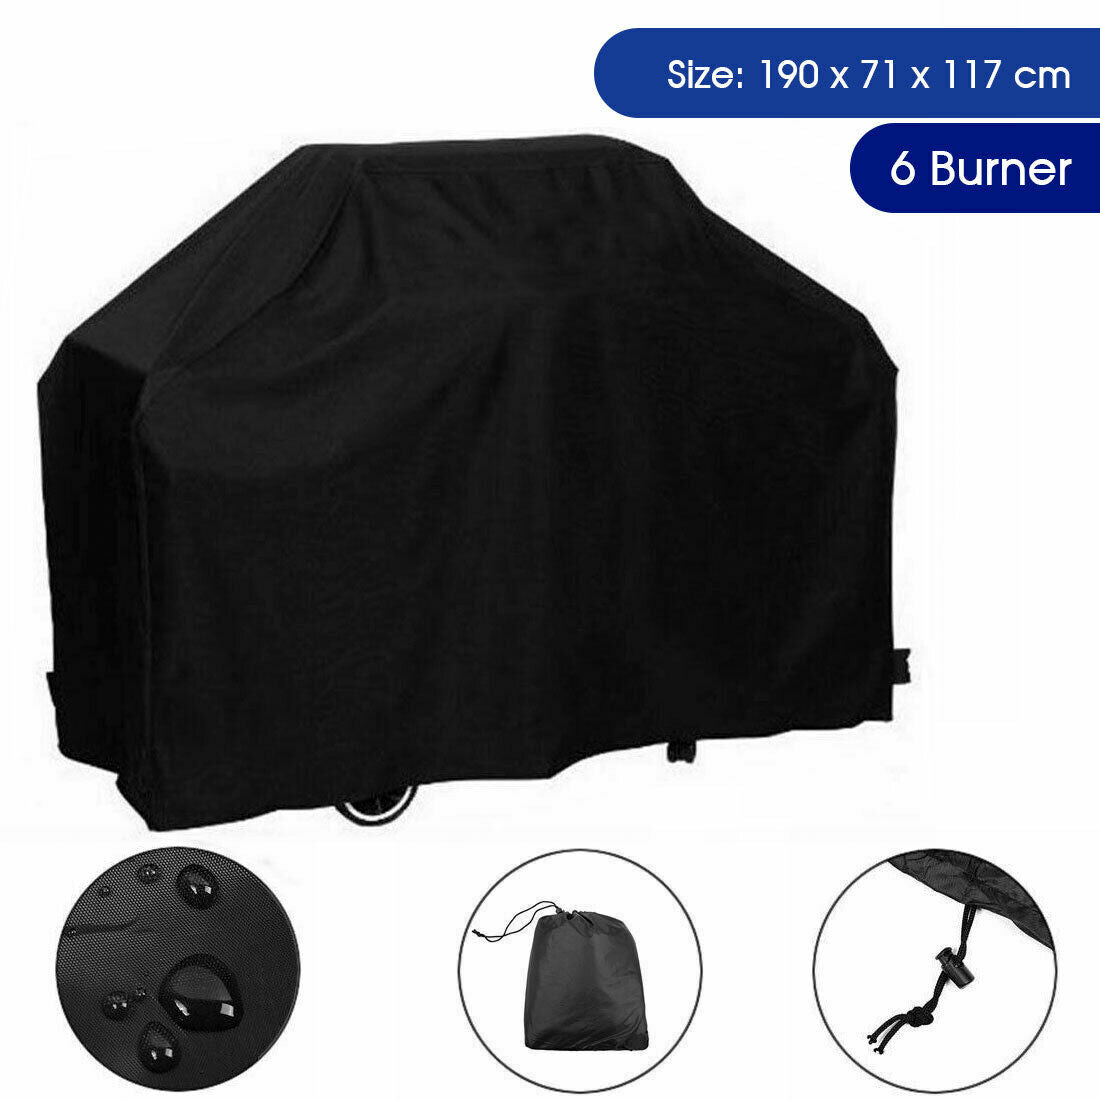 Large Waterproof BBQ Cover 2 4 Burner Gas Charcoal Barbeque Grill Protector 145